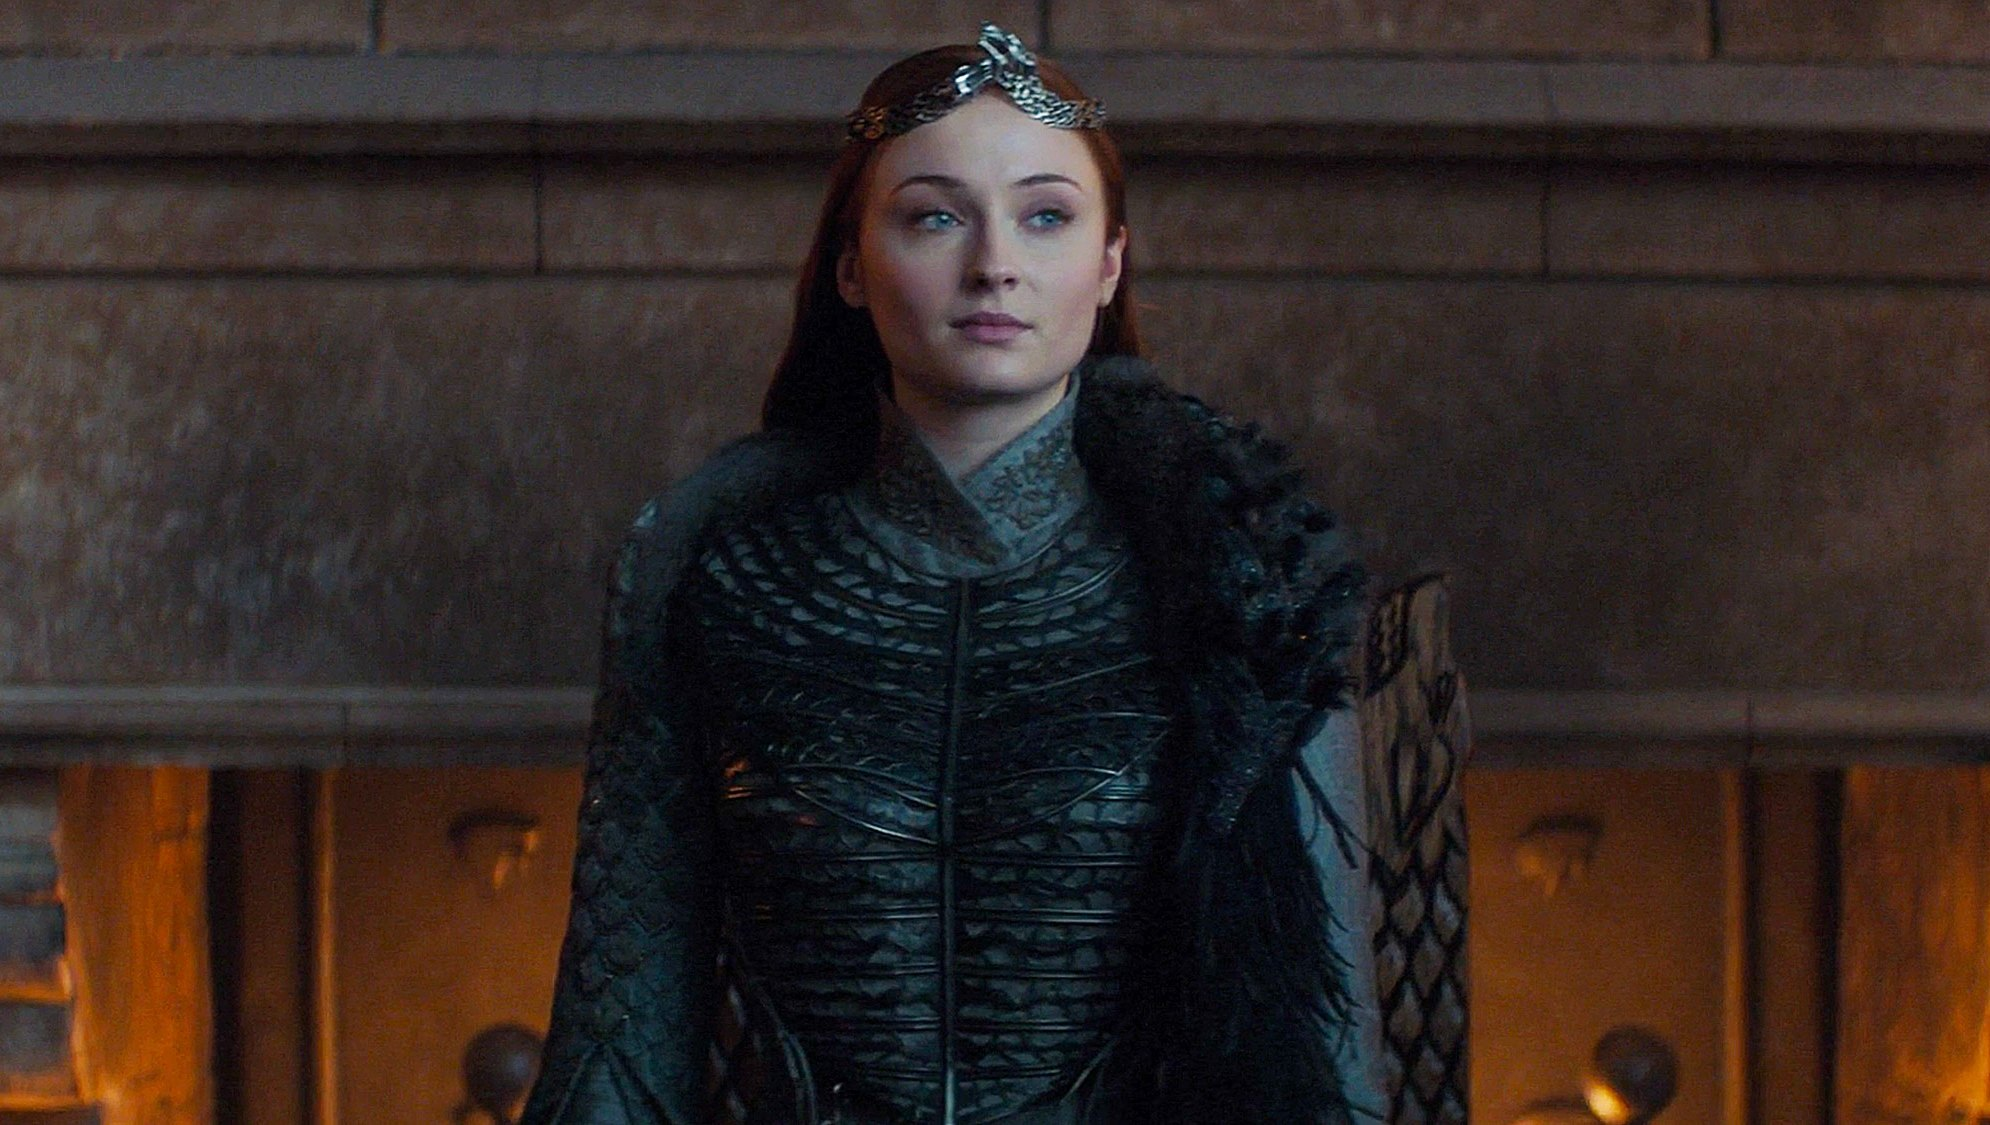 Sophie Turner Slams 'Disrespectful' Petition to Remake Final 'Game of Thrones' Season